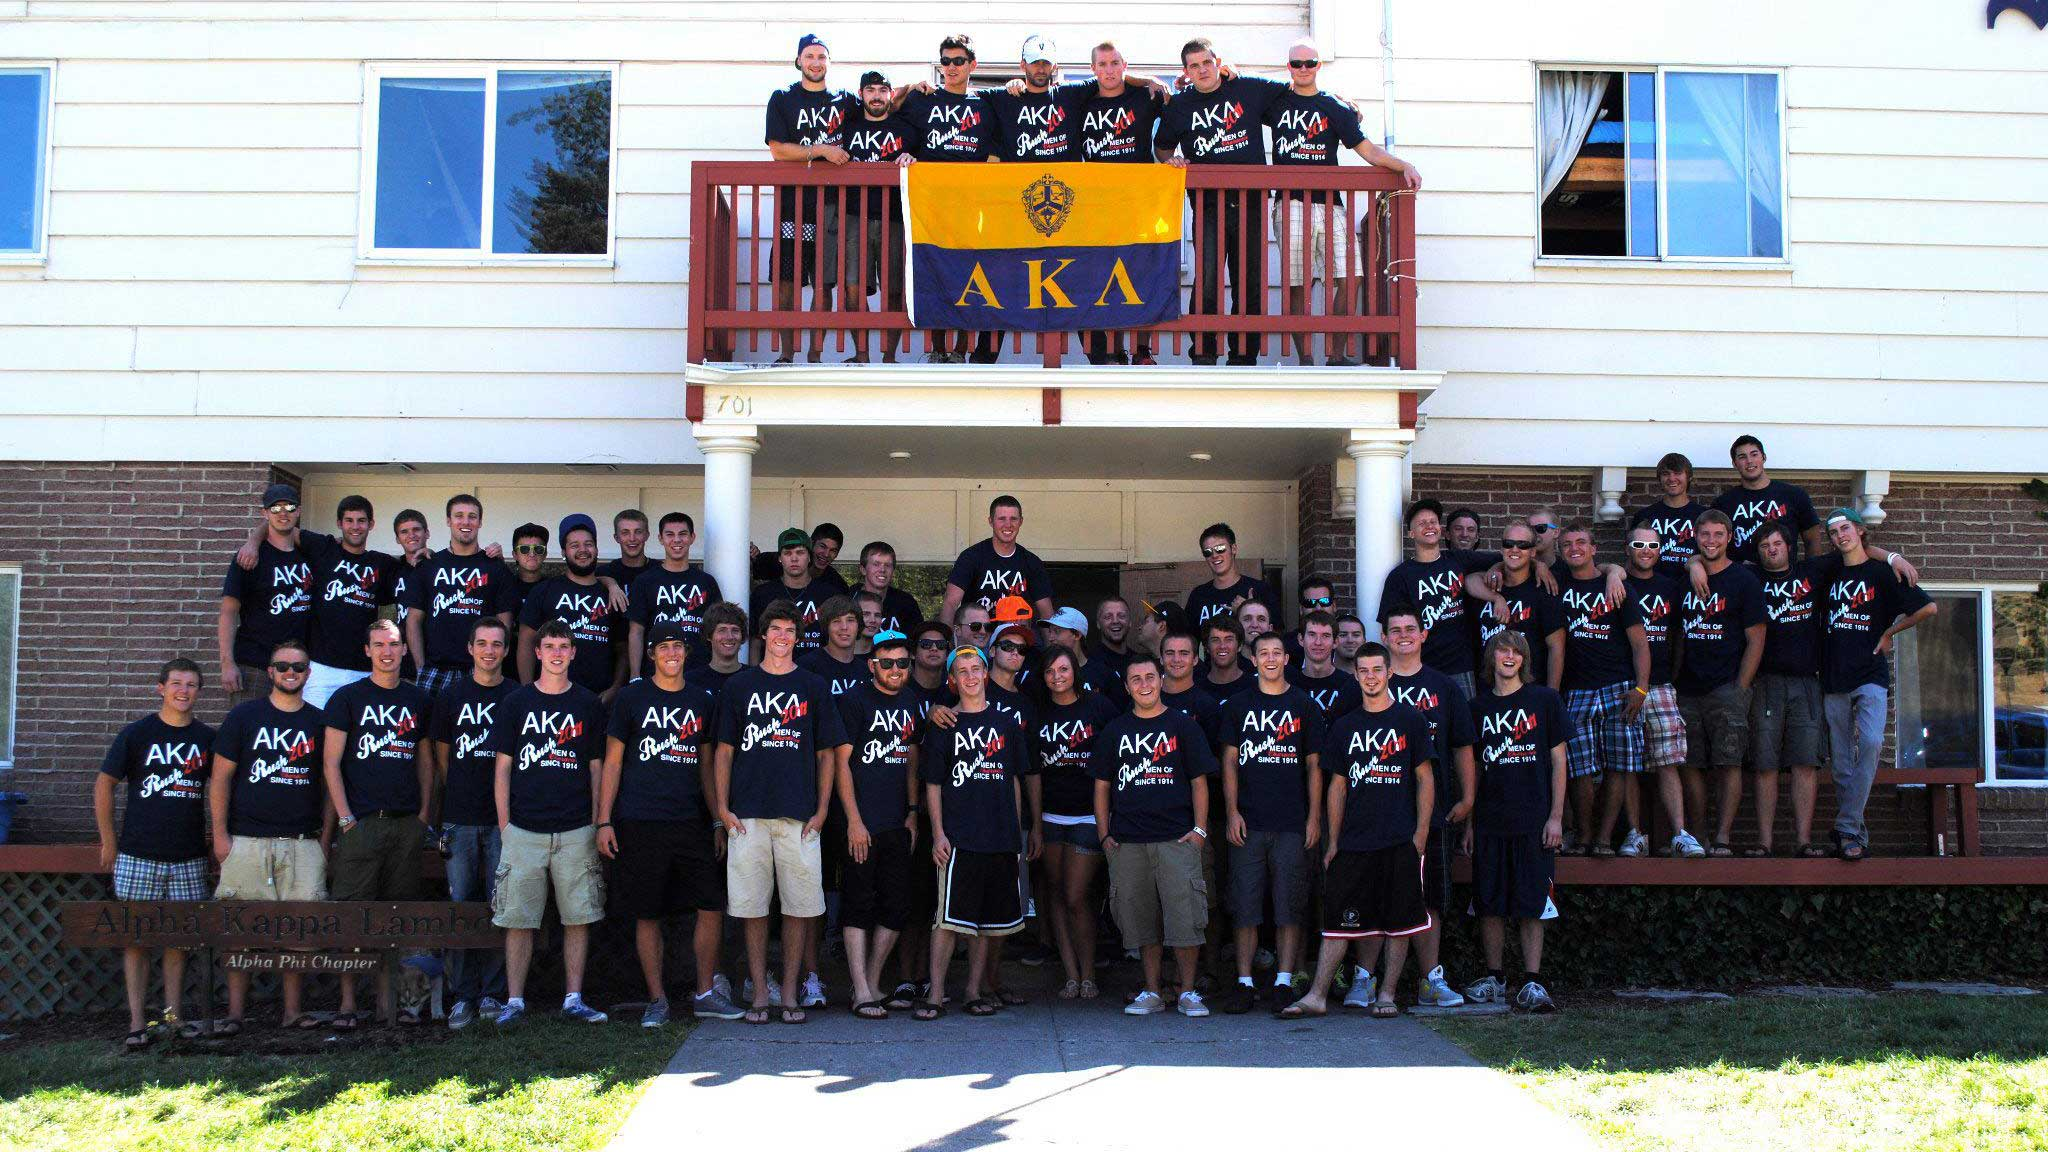 Fraternities and sororities and fraternity essay